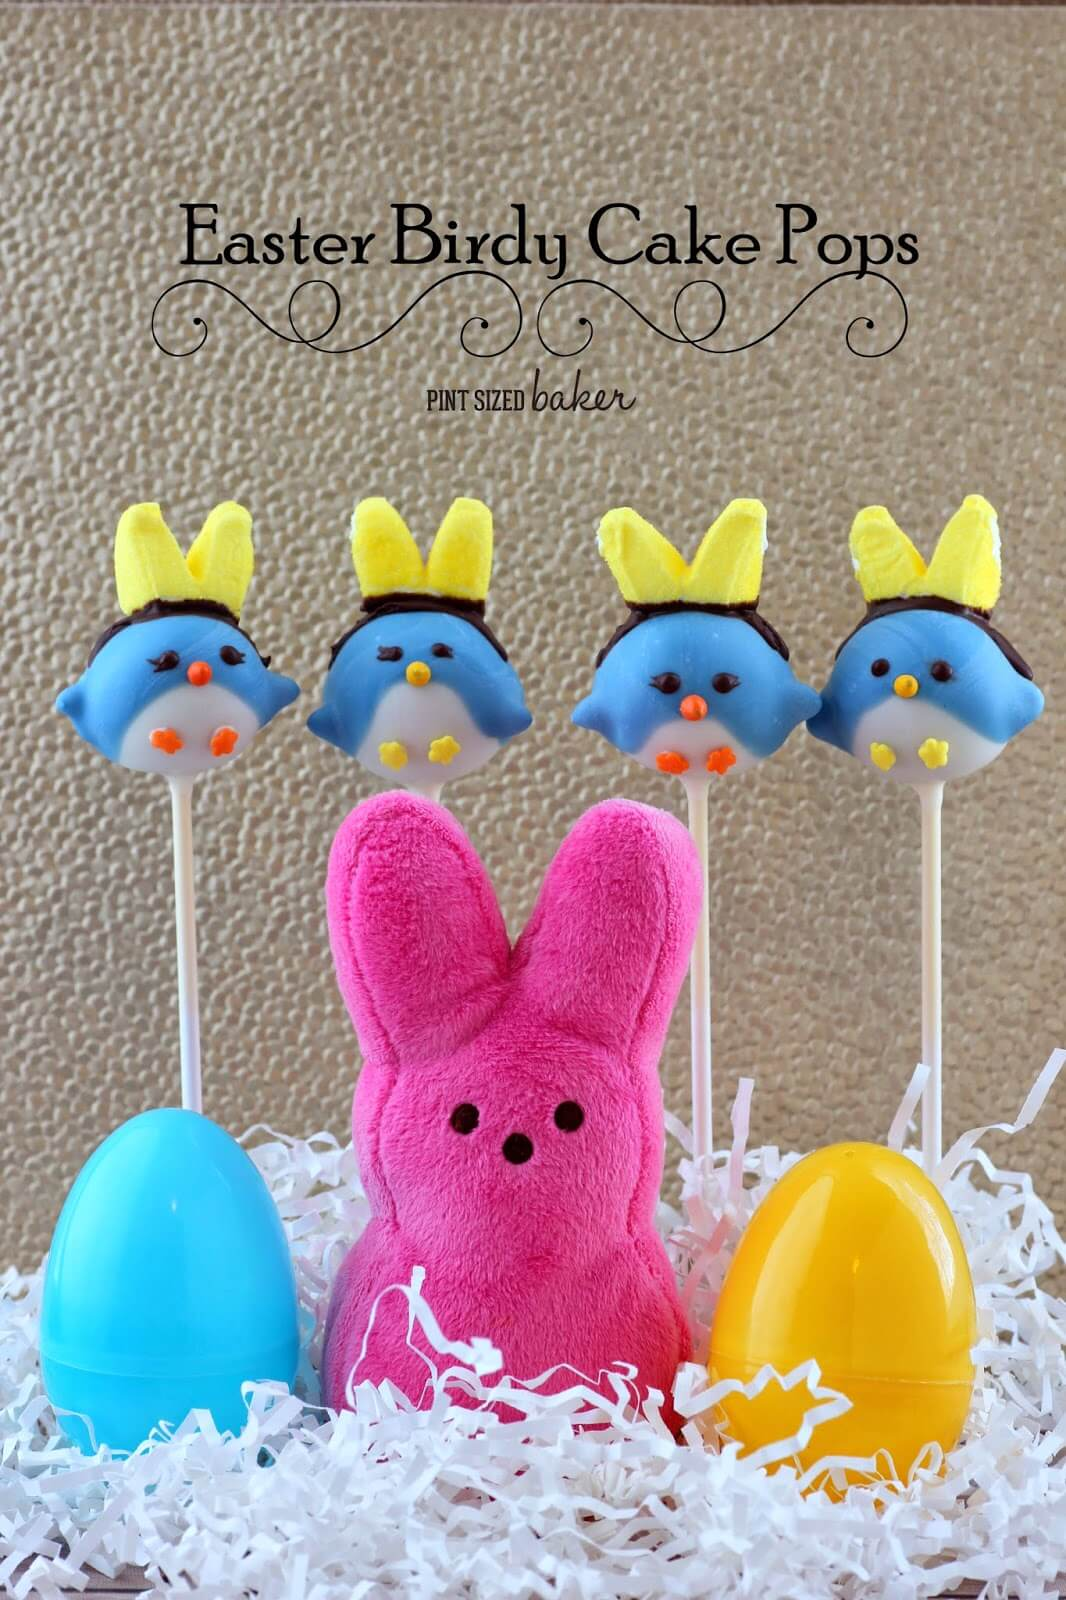 Spring Birdies Ready for Easter